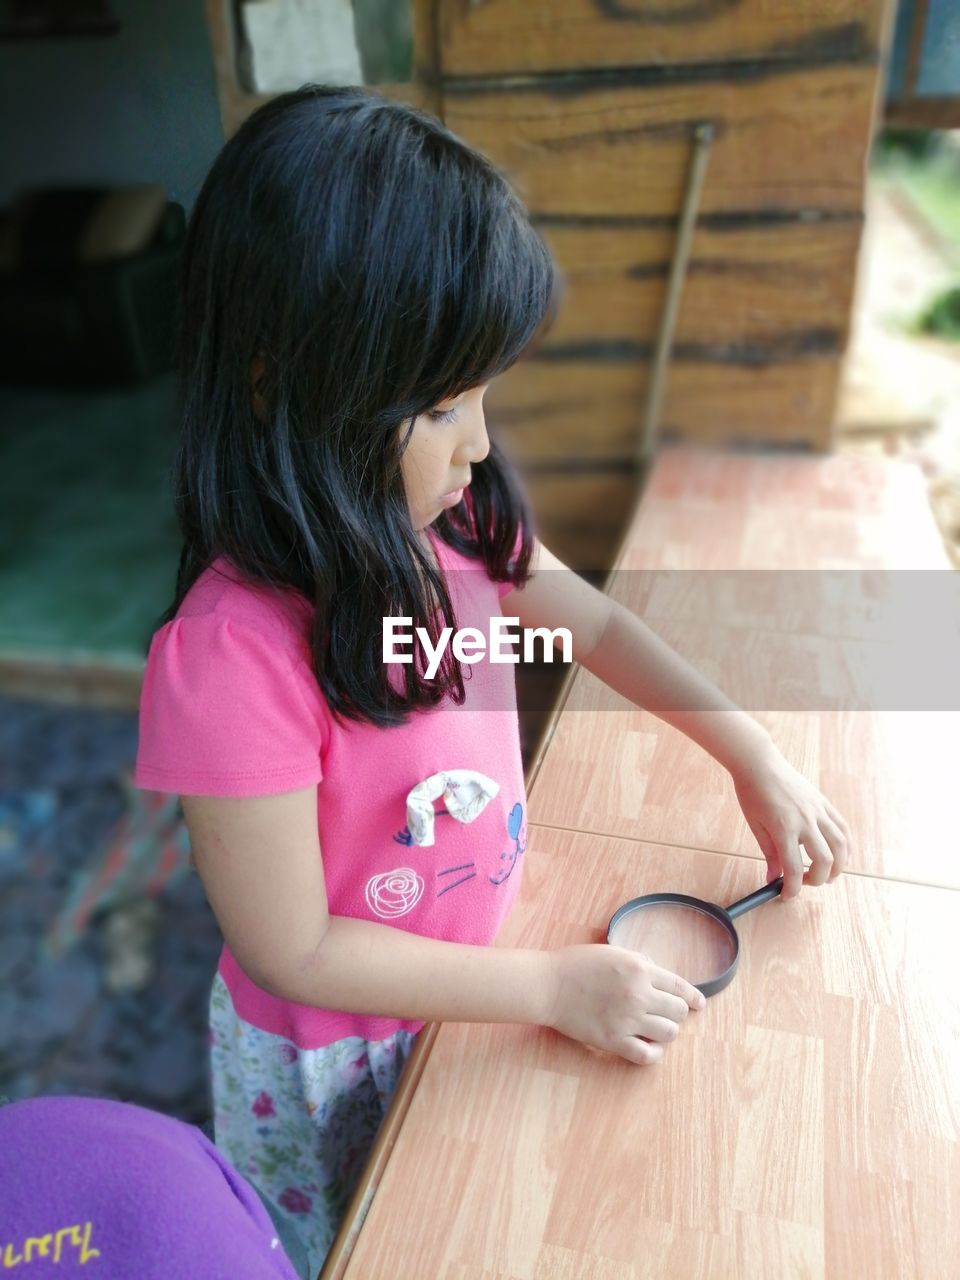 Cute girl standing holding magnifying glass on table